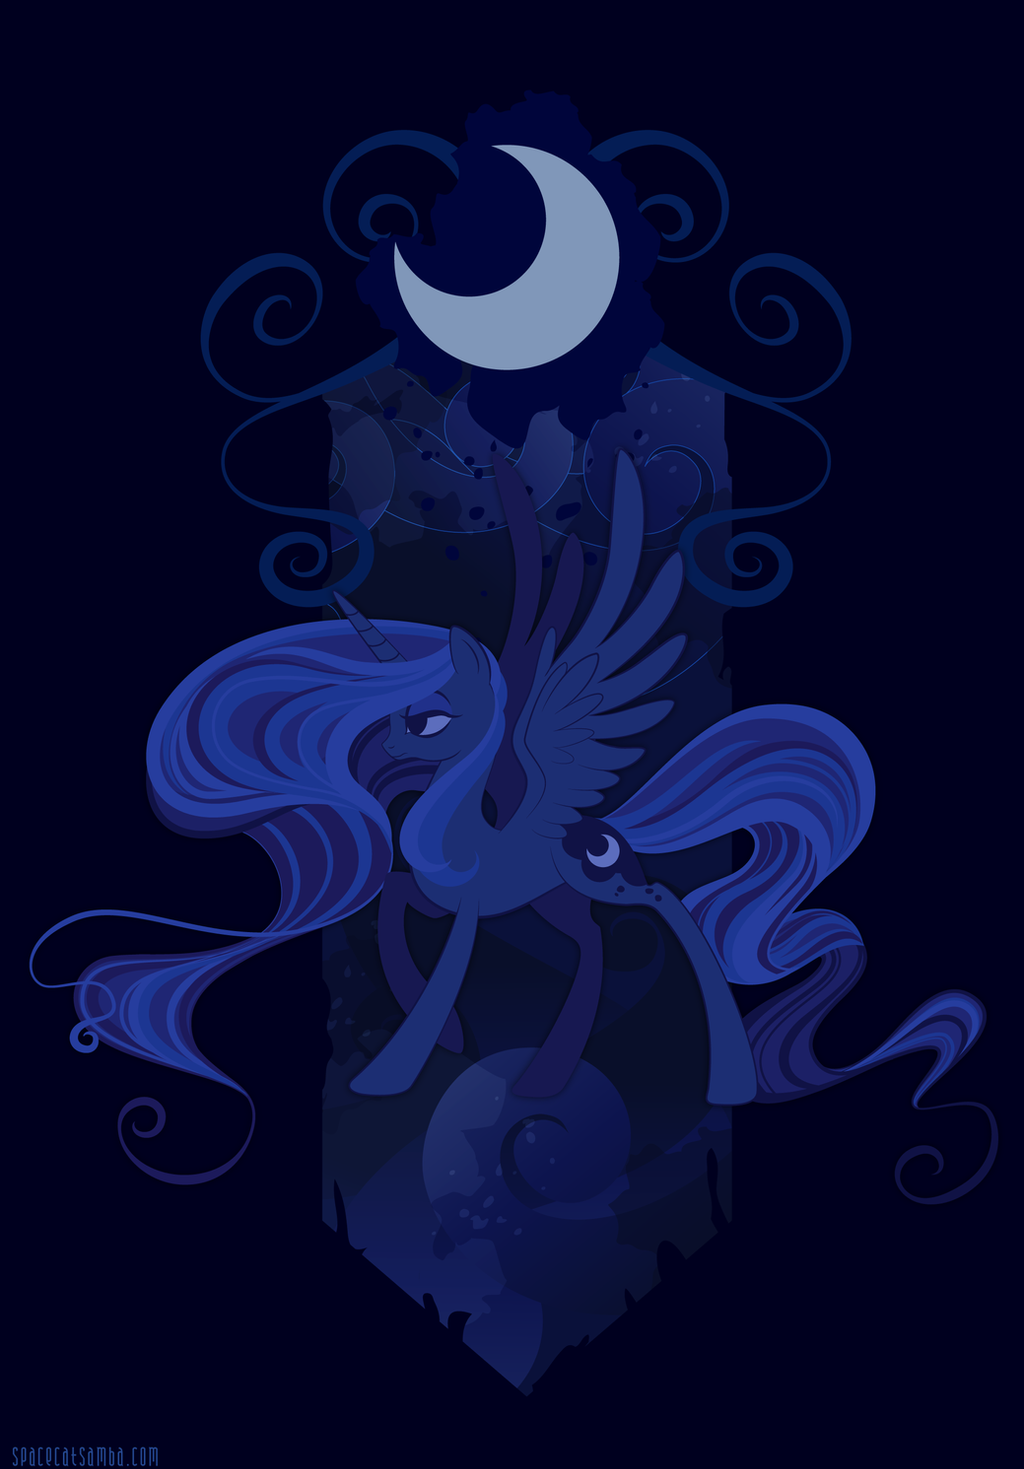 Lunar Tapestry by SpaceKitty